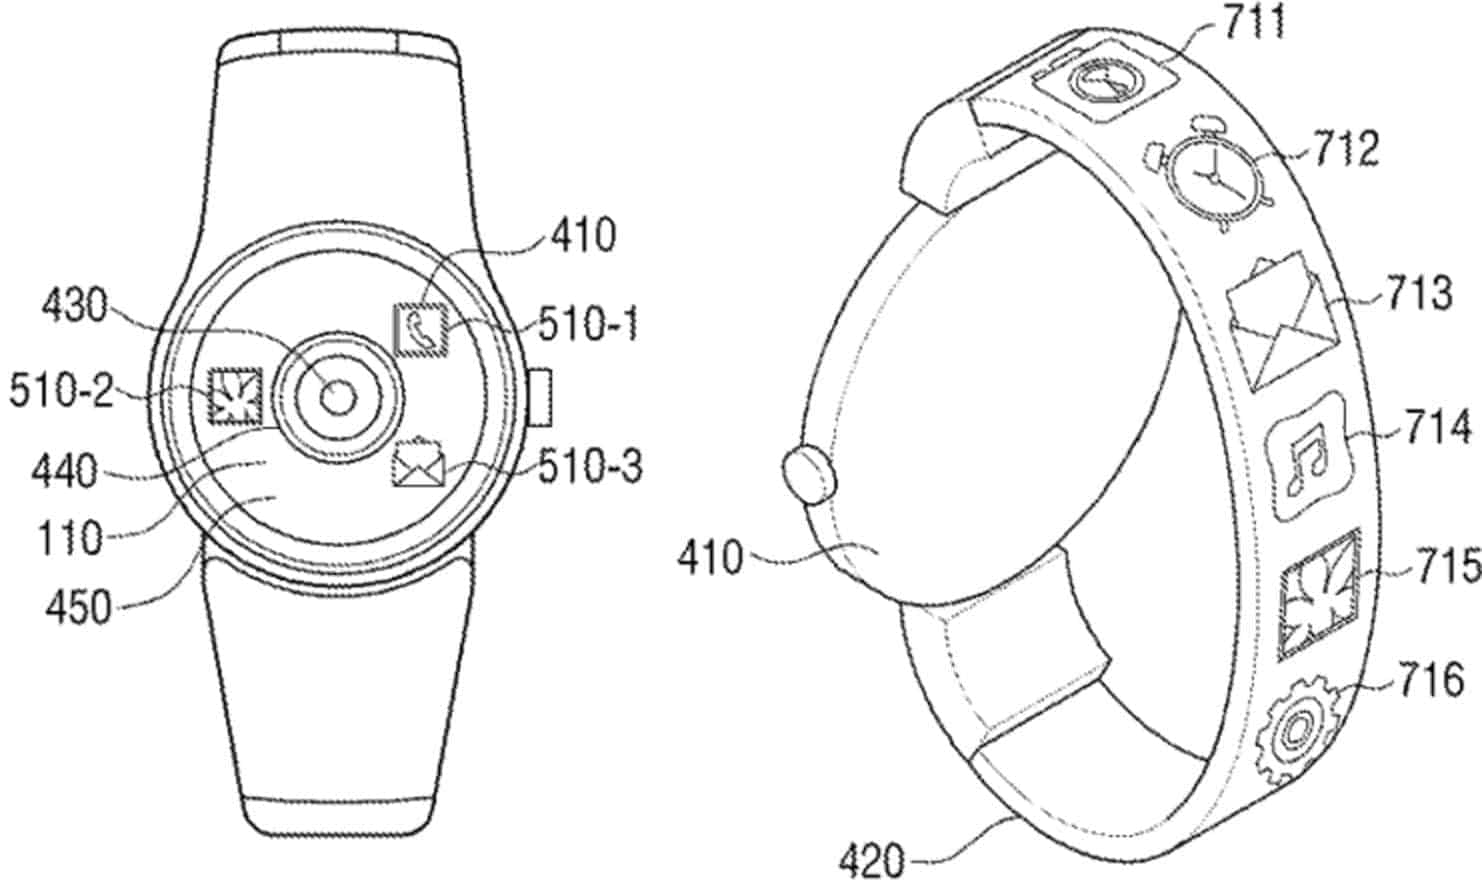 Samsung Rollable Display Patent 2